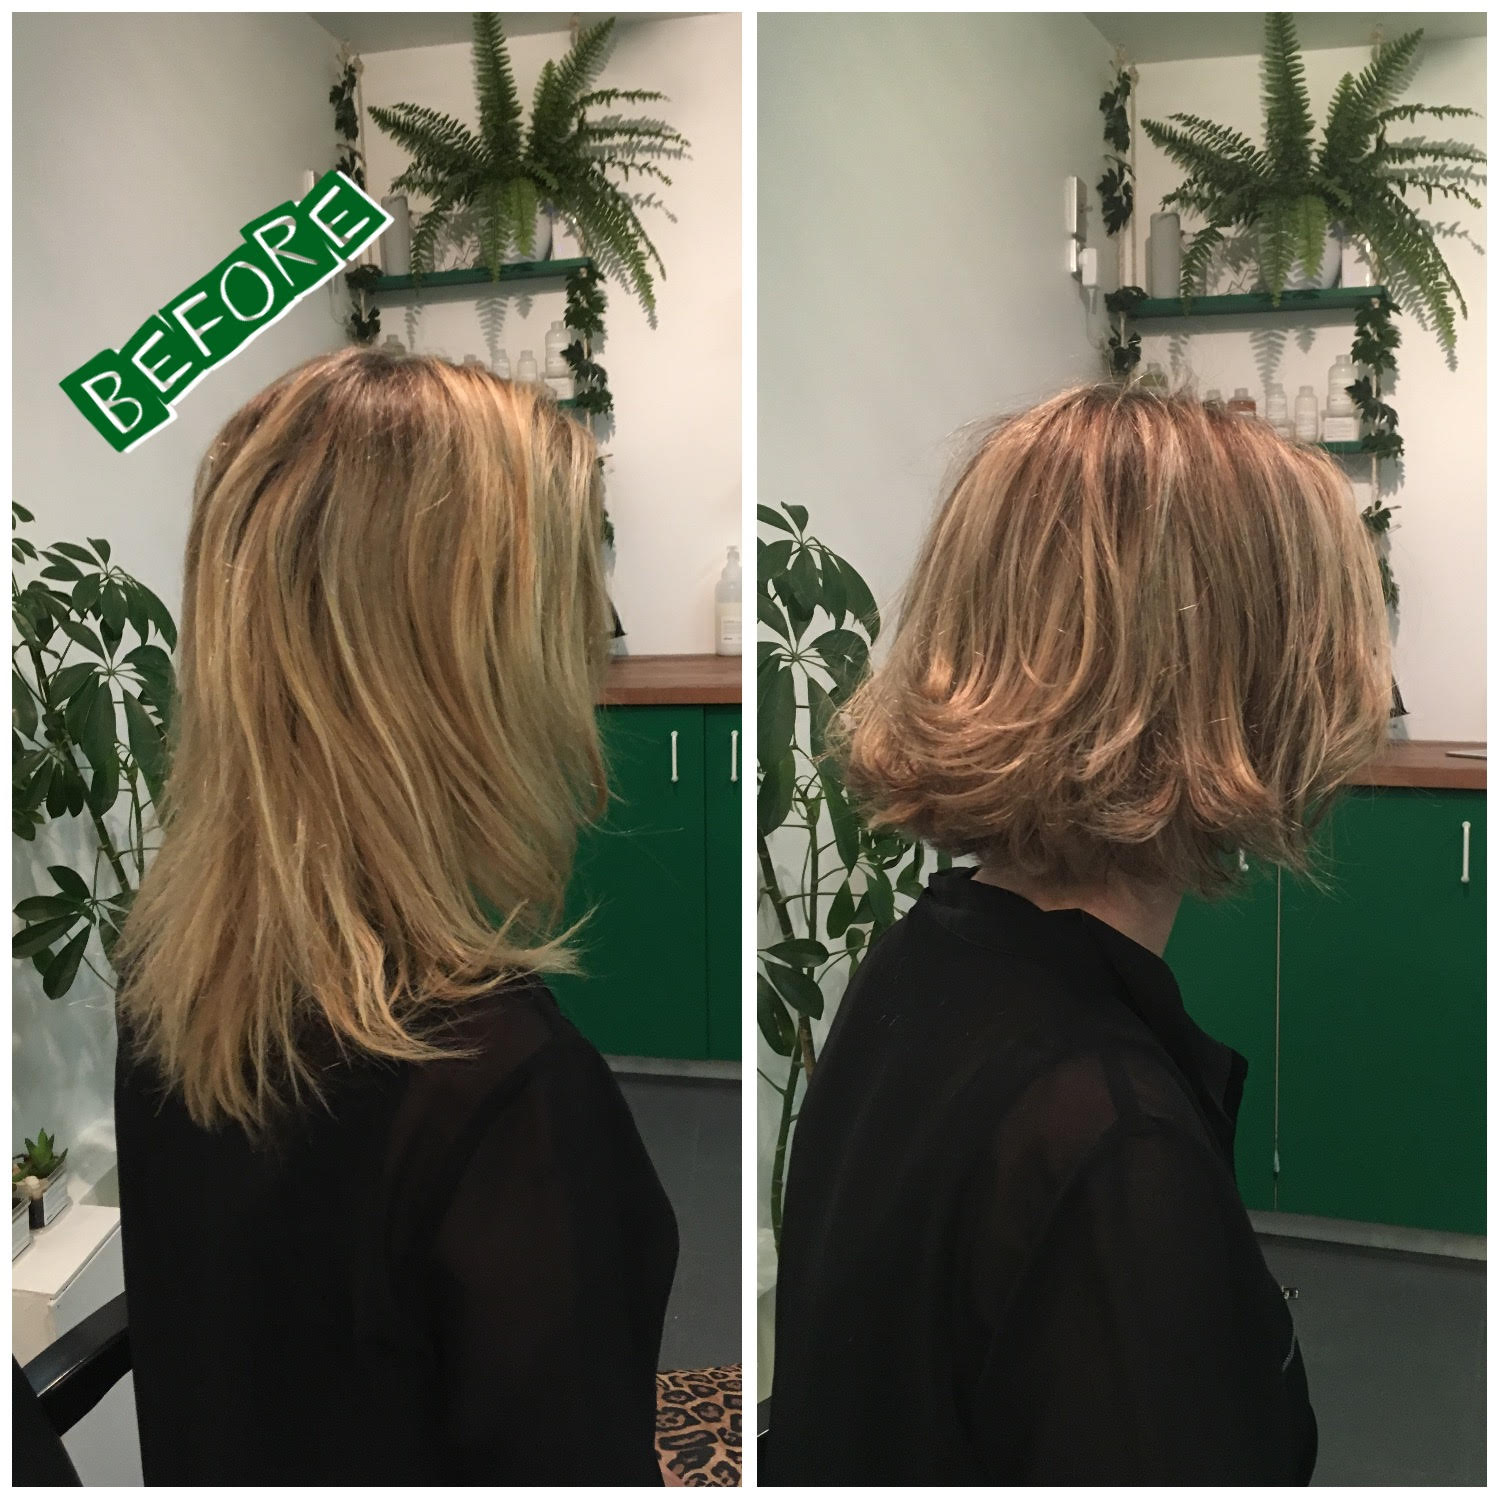 Chic & Stylish - Creating texture and dimension using low/high lights achieves a modern, natural look.This is a perfect blend for when your hair grows.